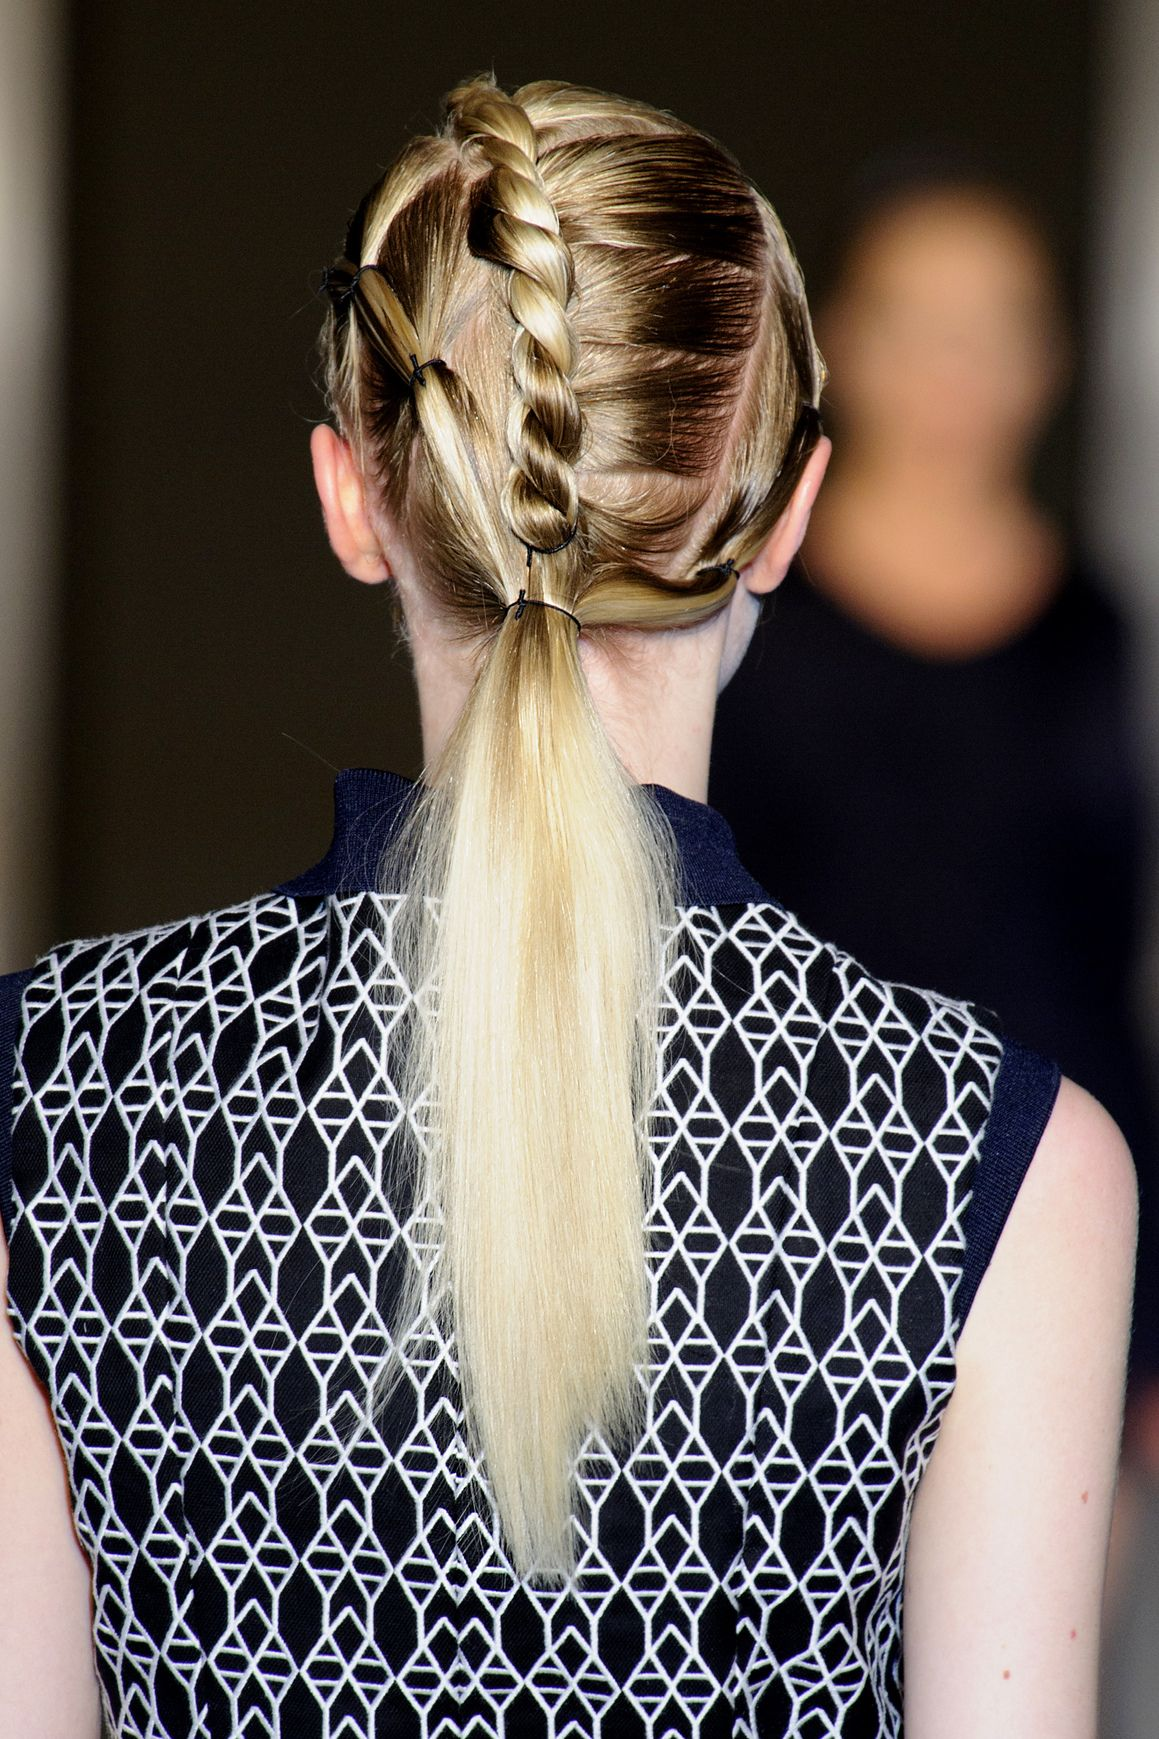 hairstyles you can do with one hair tie - easy hair ideas spring 2015